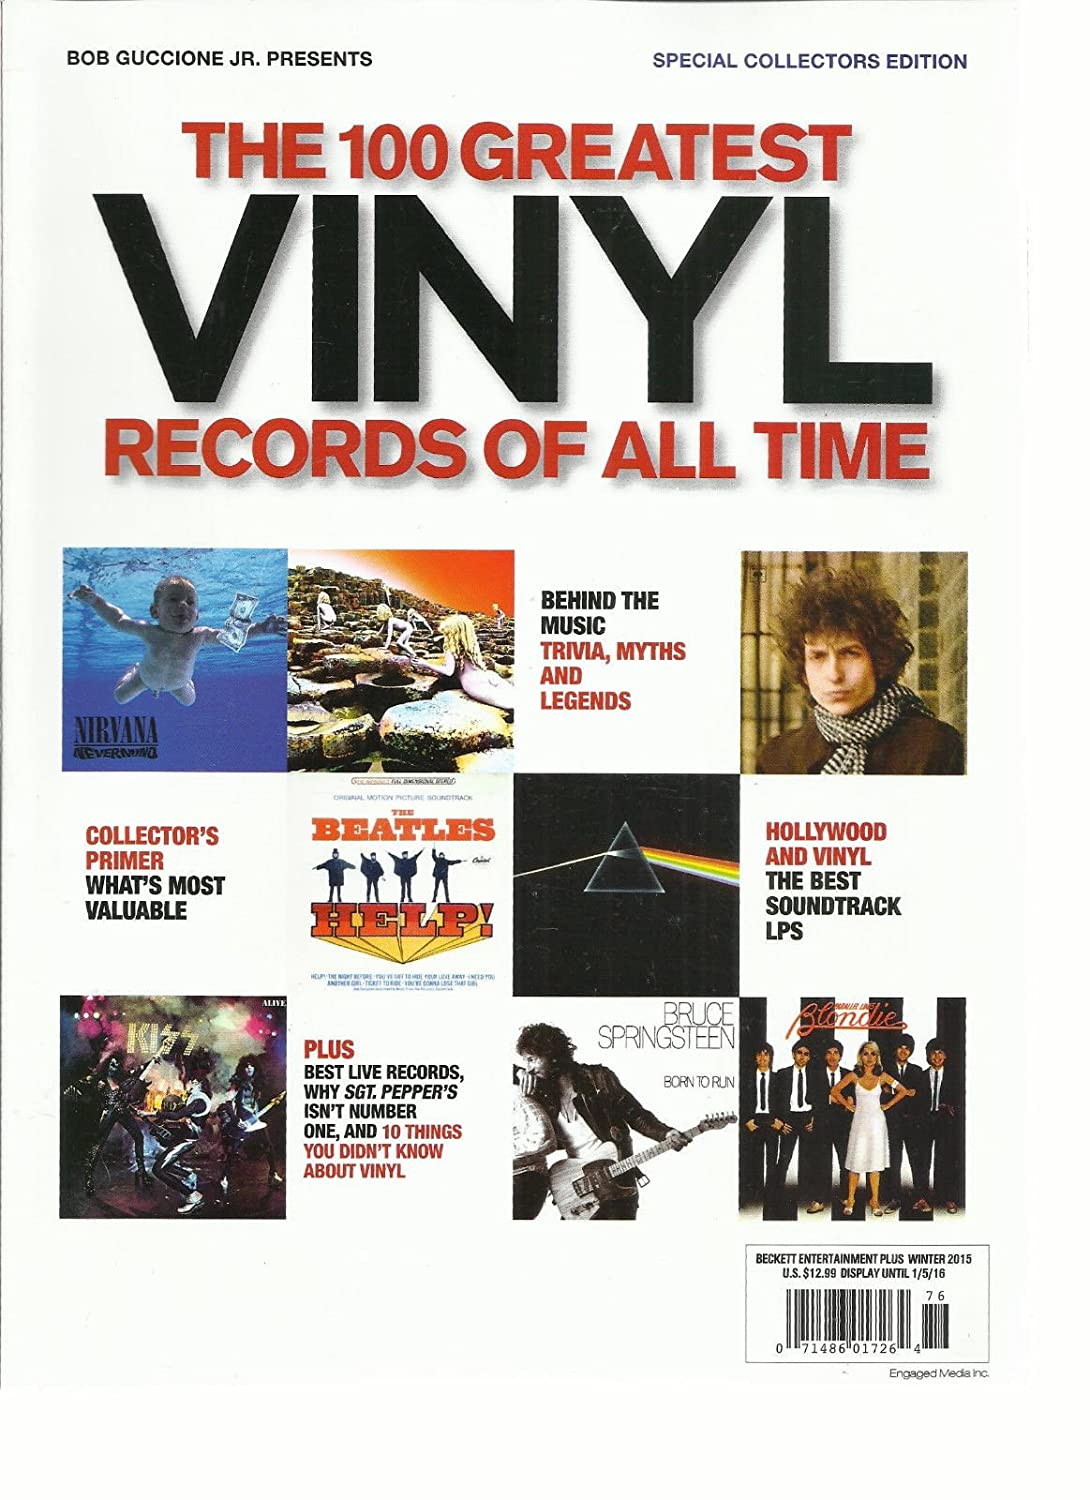 THE 100 GREATEST VINYL RECORDS OF ALL TIME MAGAZINE, SPECIAL COLLECTORS EDITION, s3457